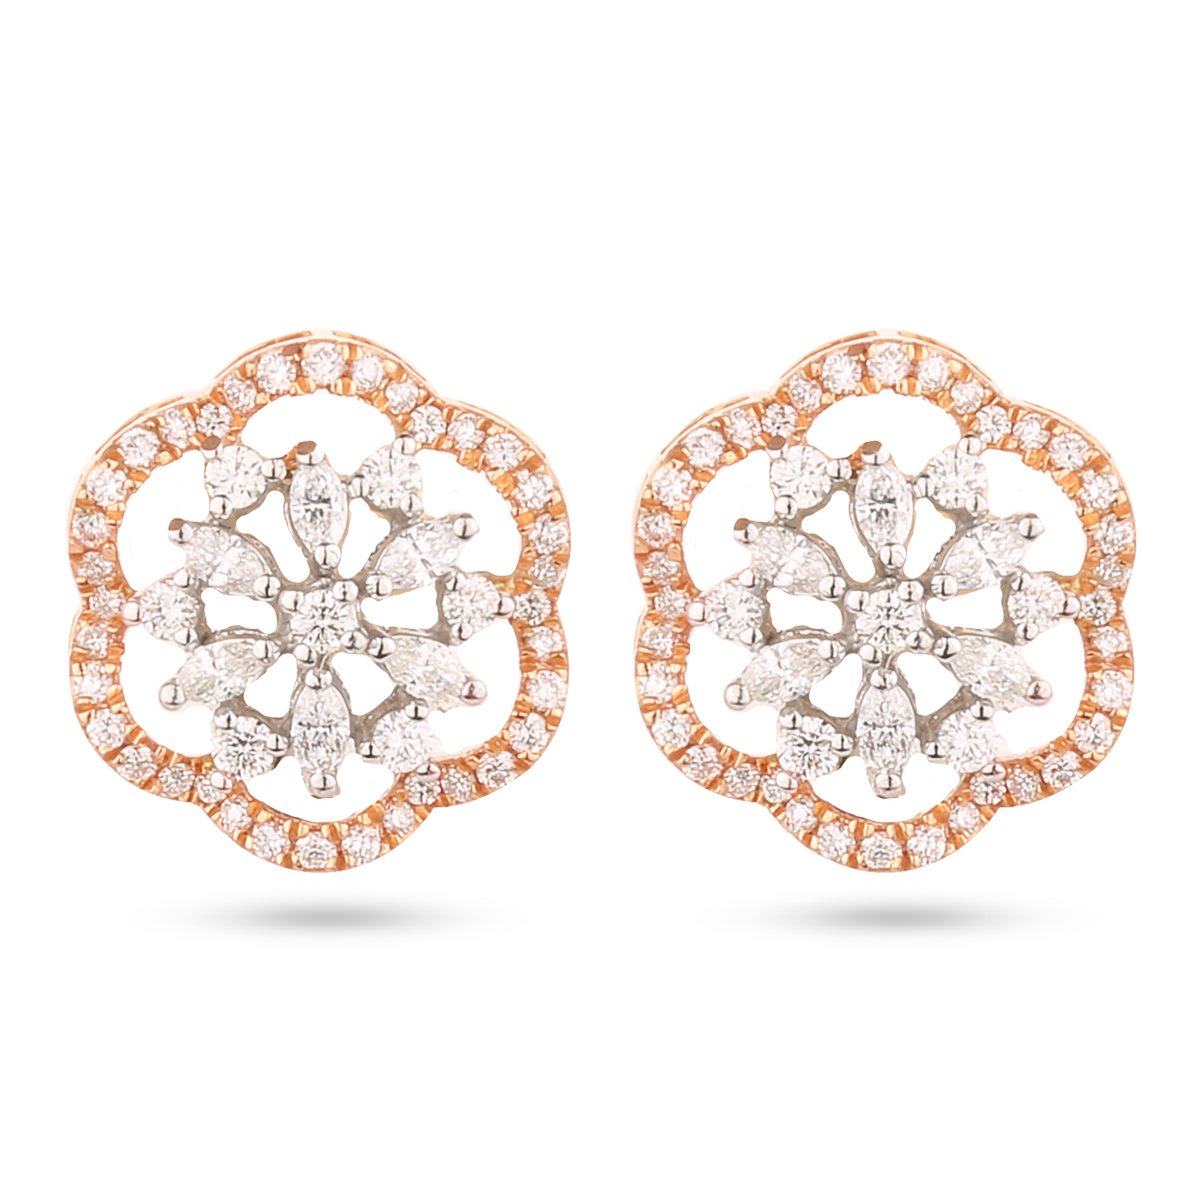 Brilliant Diamond Earrings